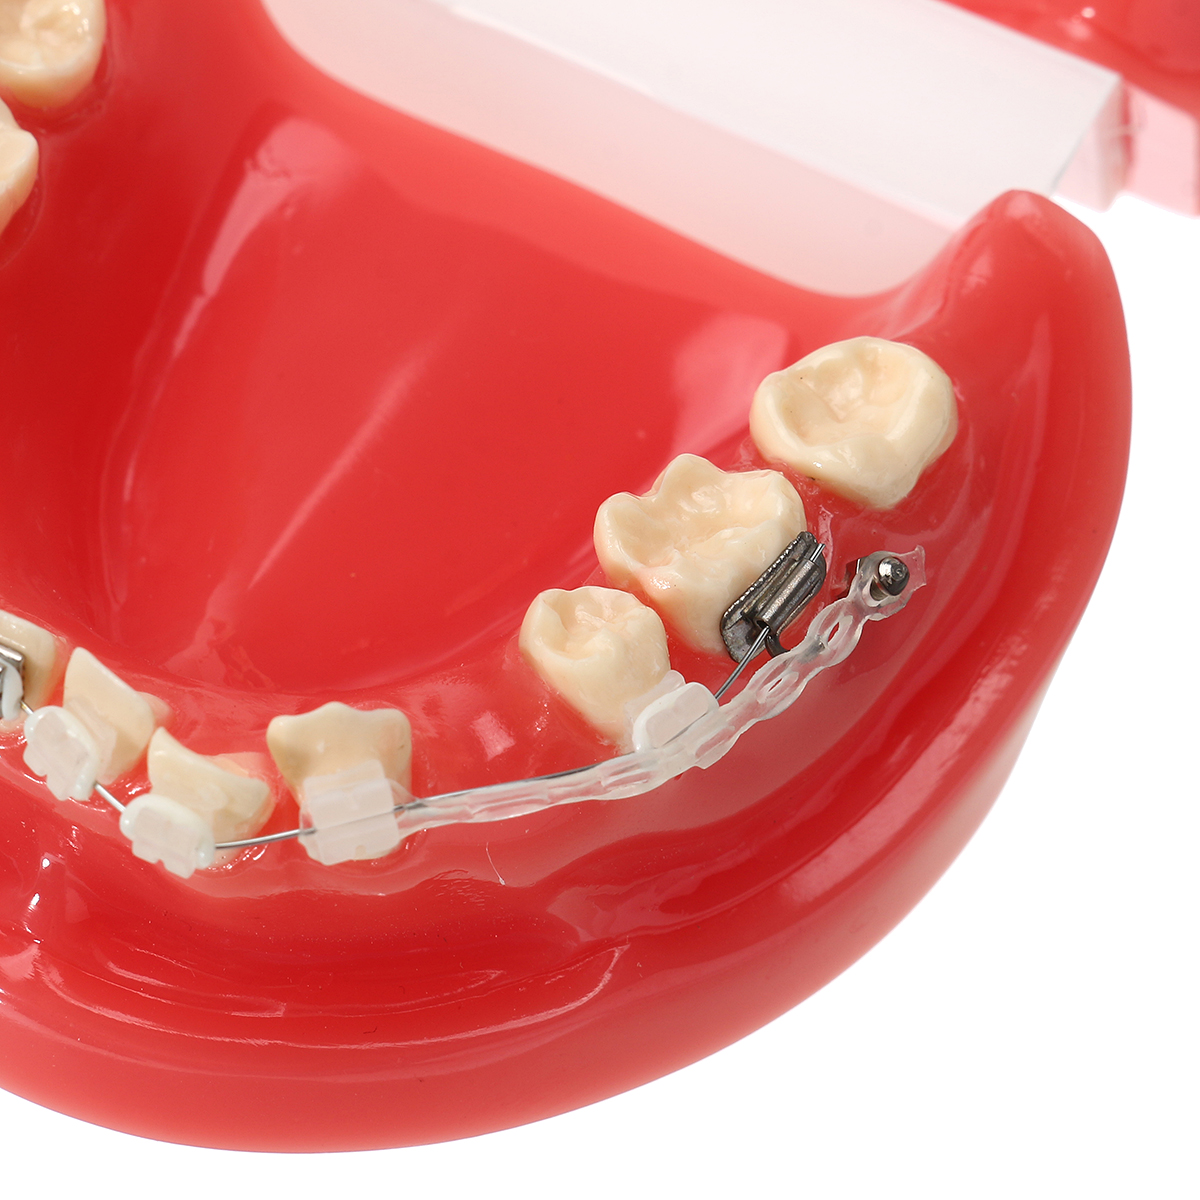 Dental Durable Ceramics Model With Elastic Rubber Chain